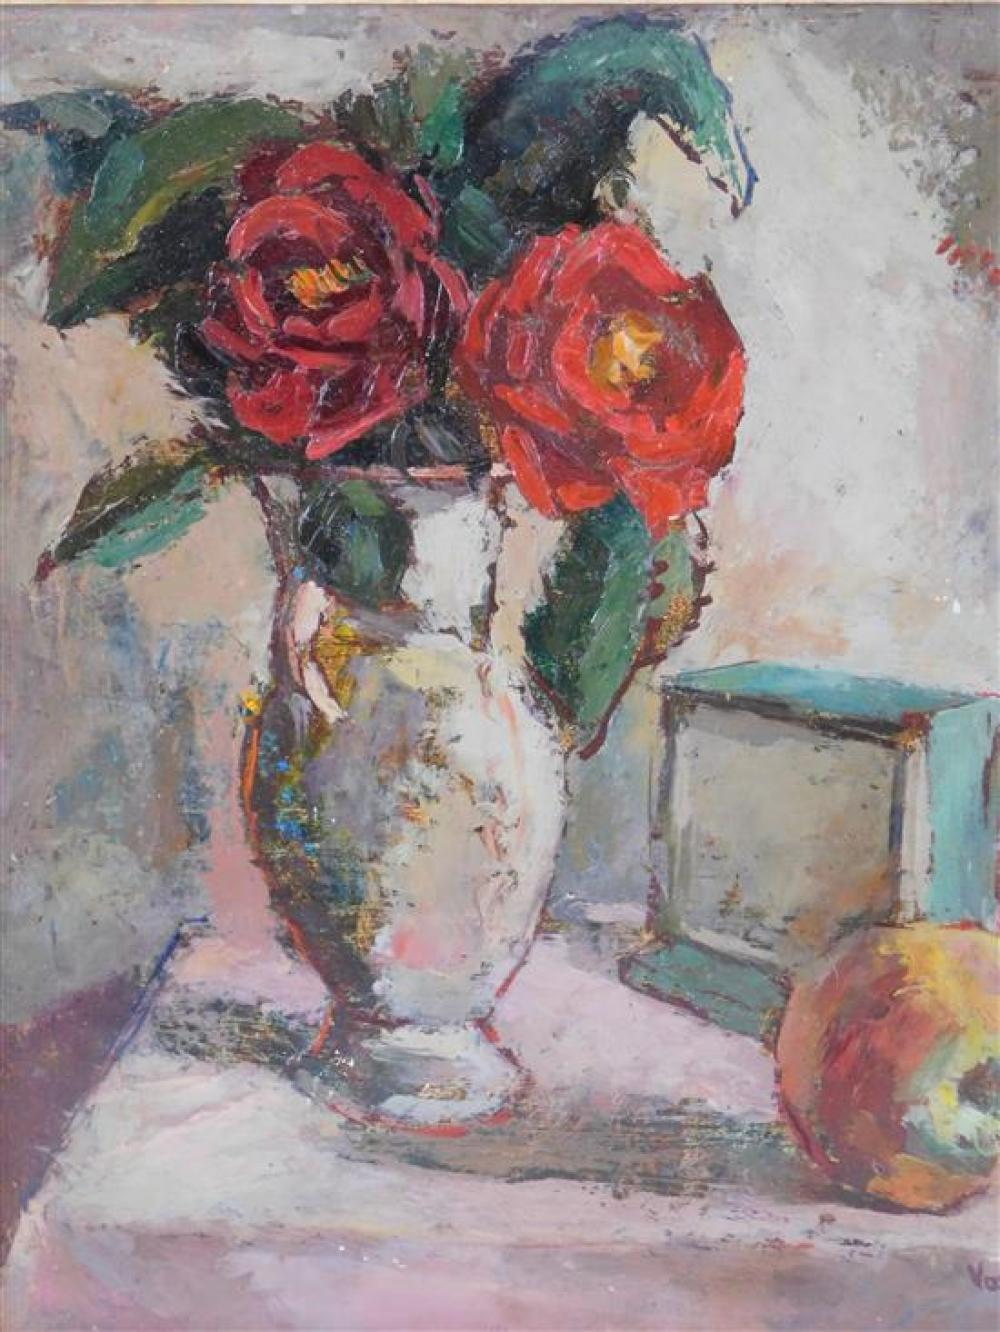 Oscar Van Young (American, 1906 - 1991), oil on board, depicts still life with roses in vase beside apple and blue box, signed LR, f...